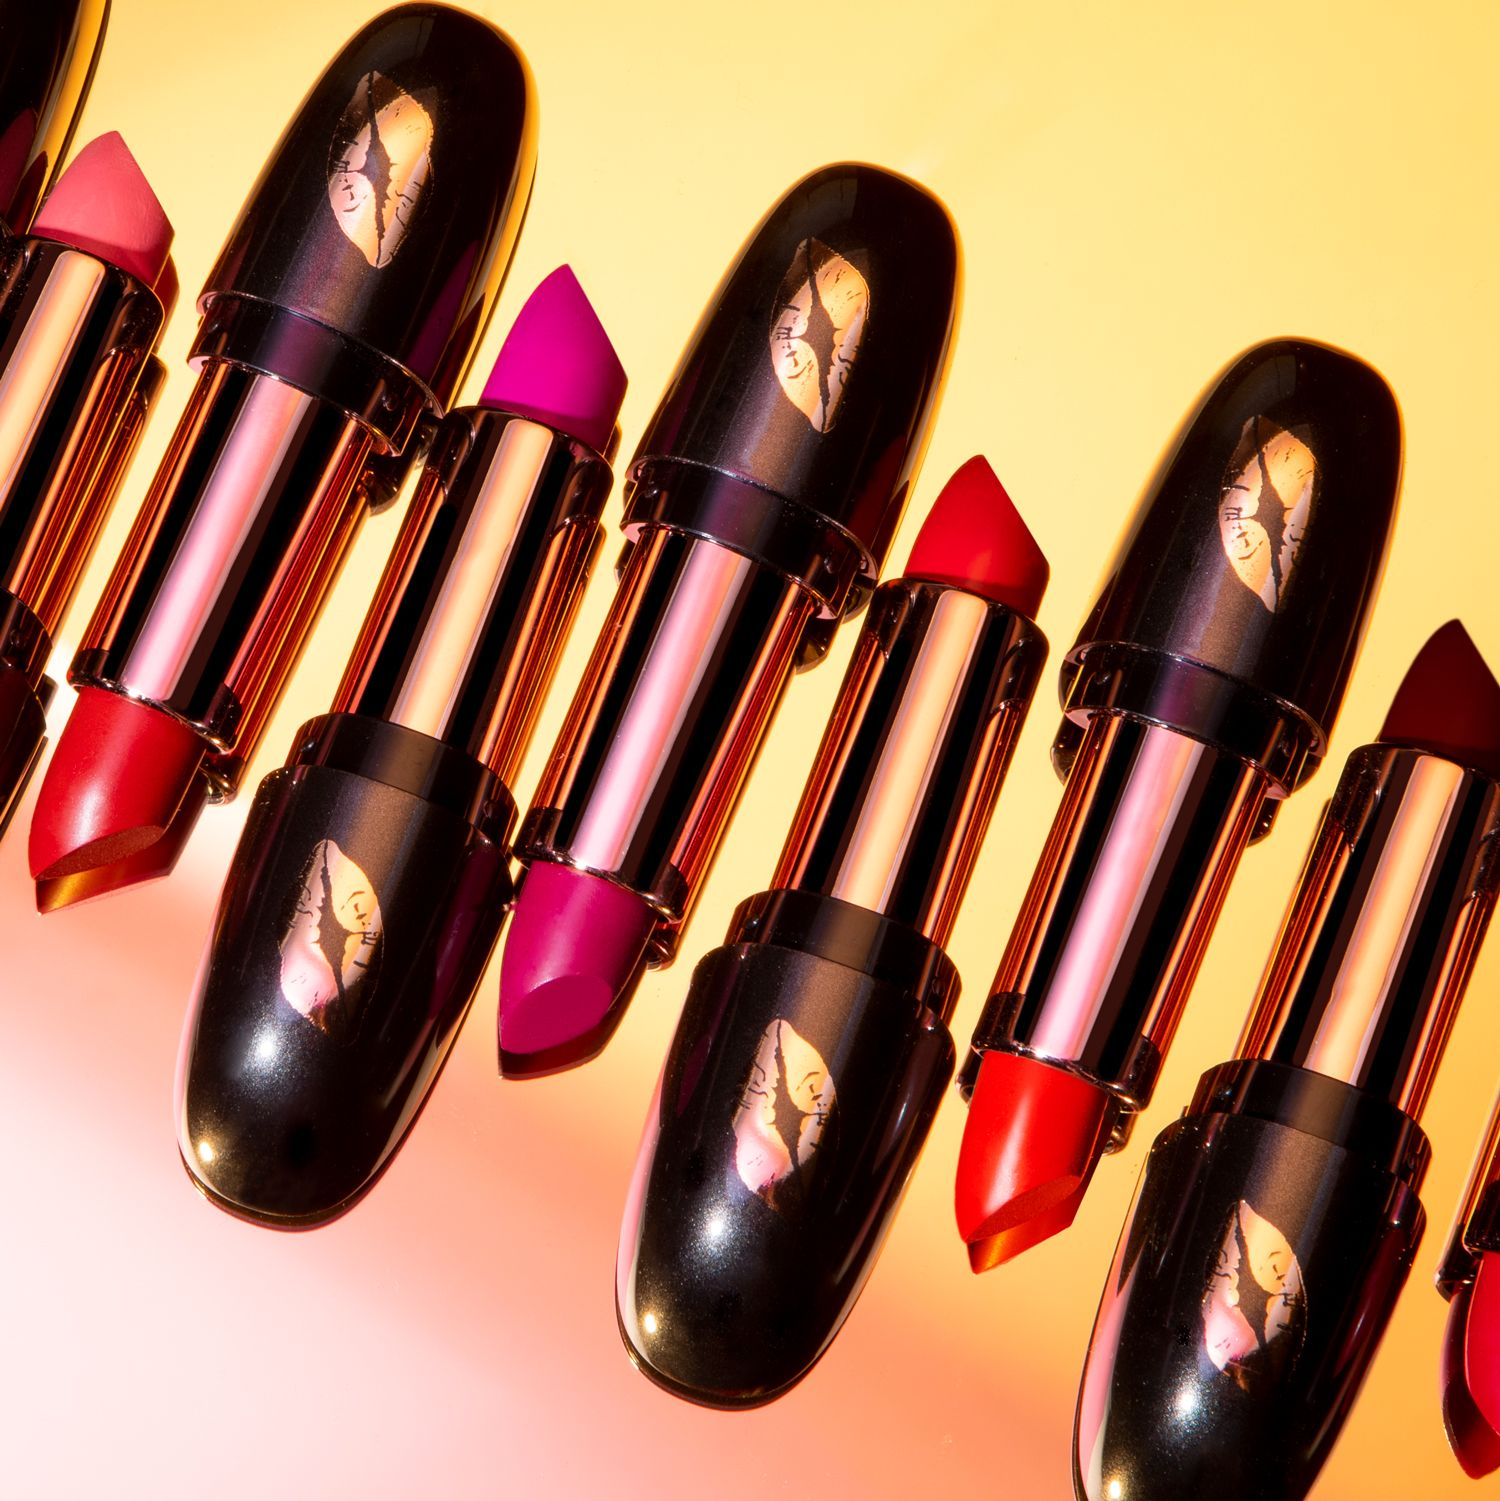 You can never have too many lipsticks. 💄 What's your